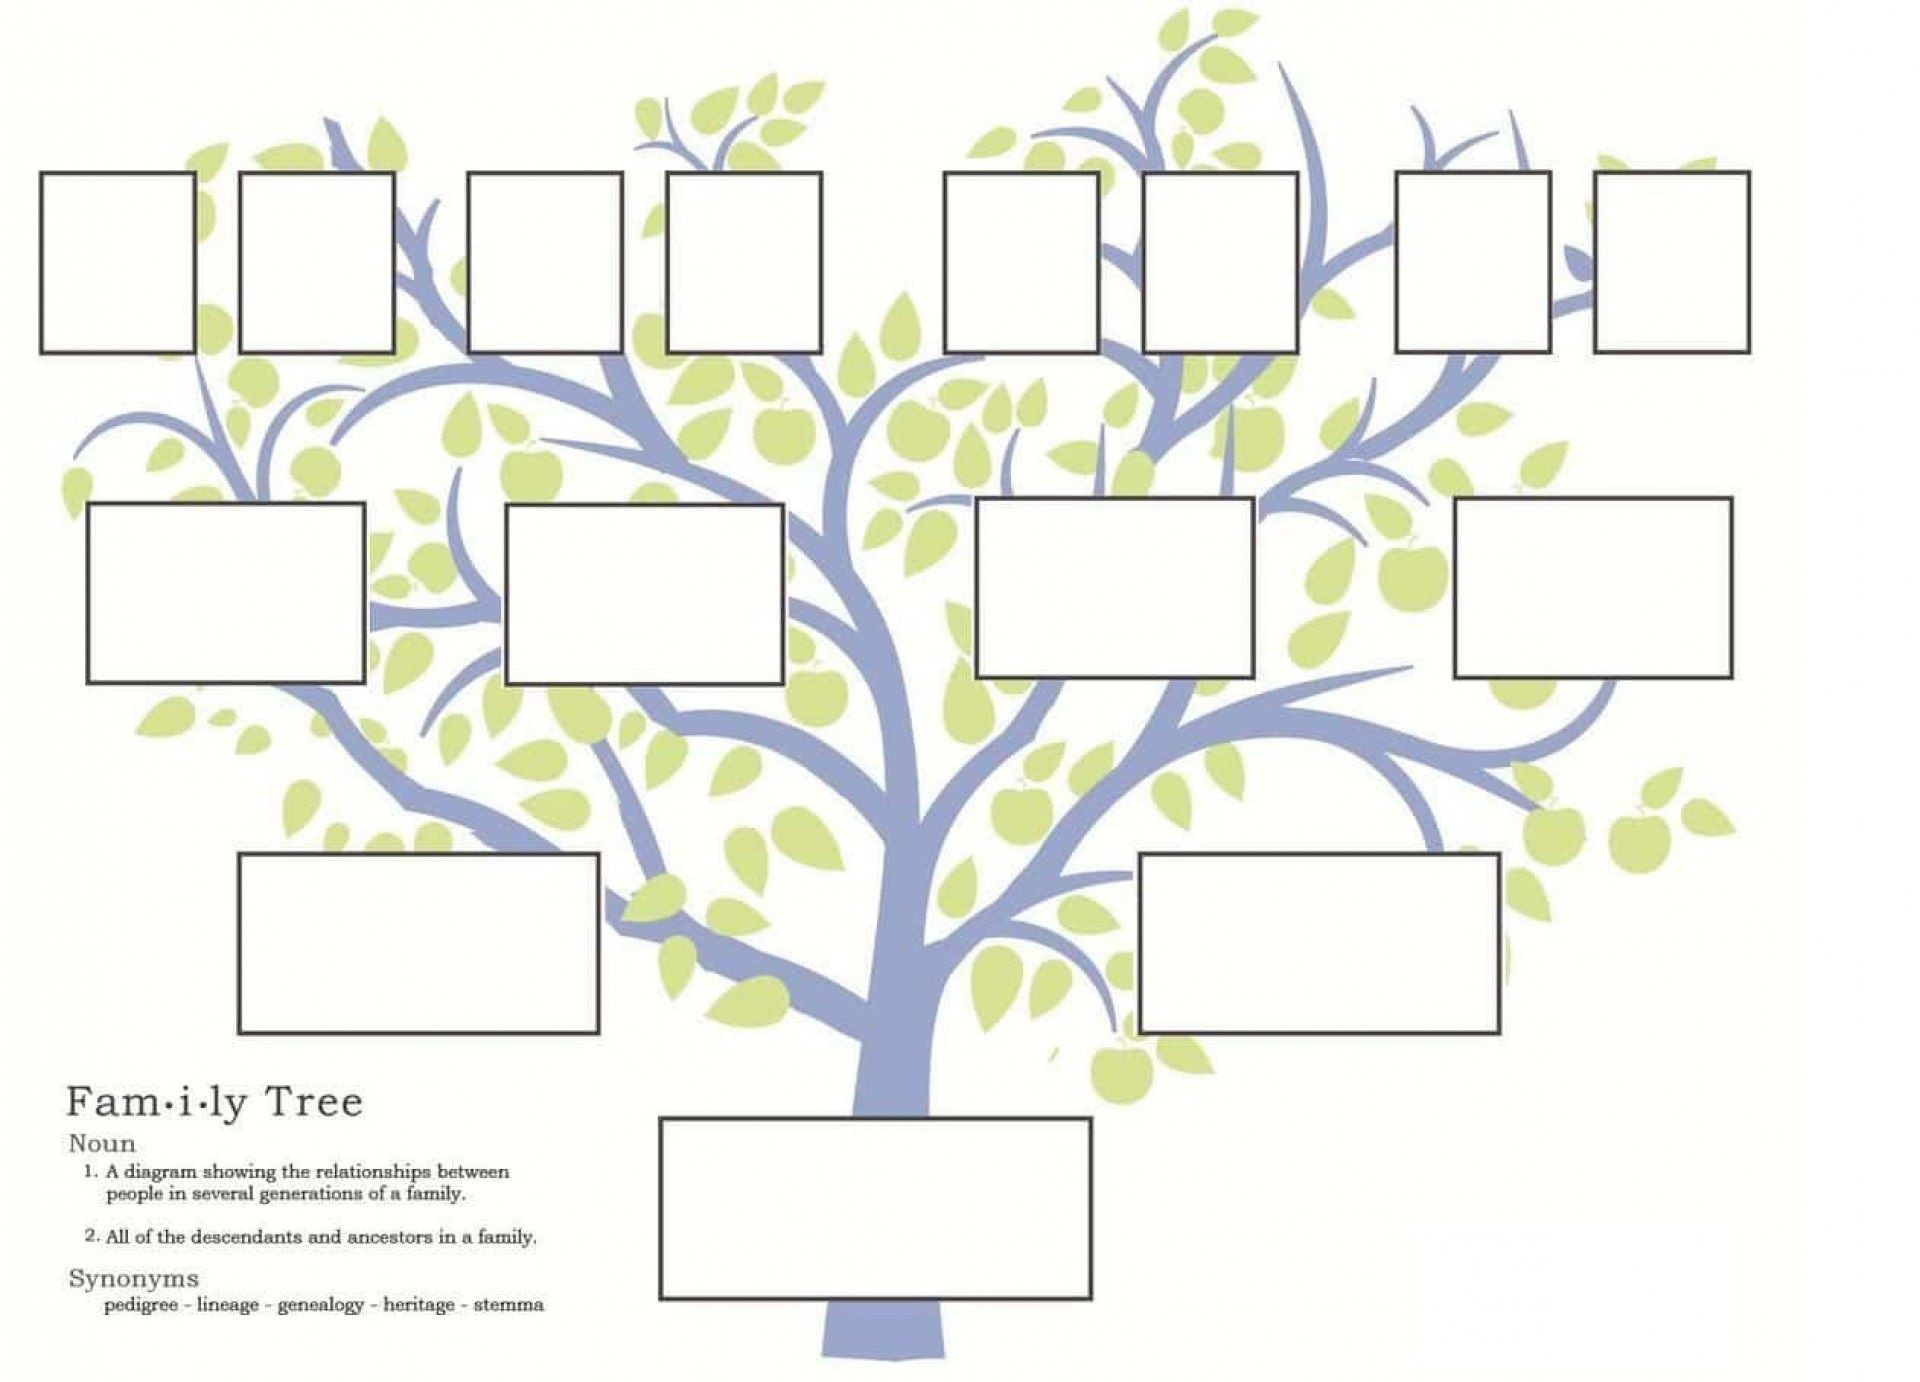 007 Breathtaking Free Editable Family Tree Template For Mac Concept 1920